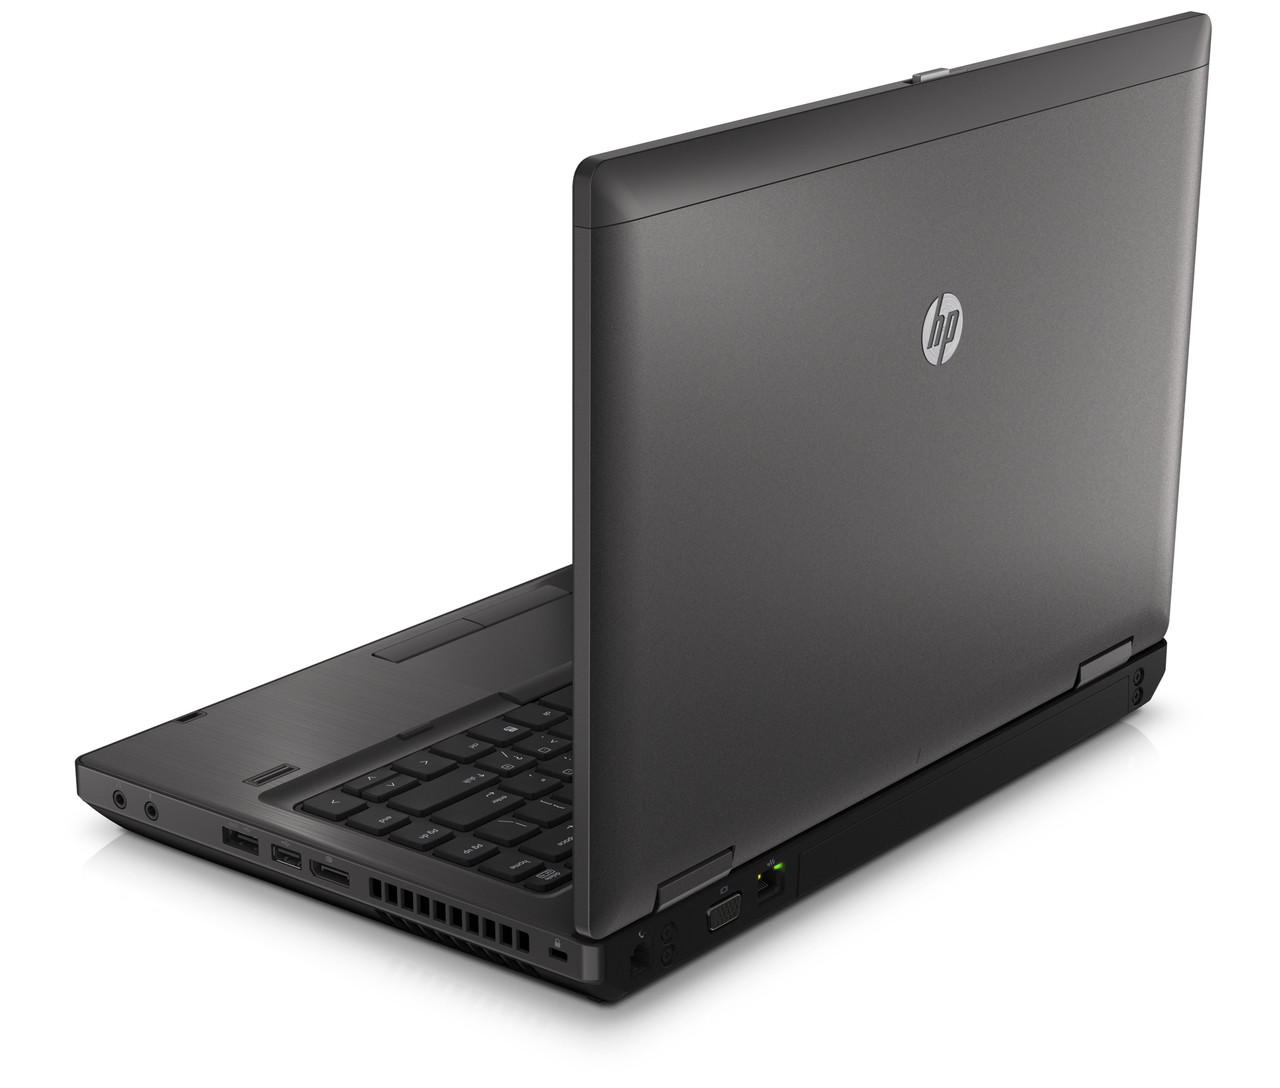 Hp Probook 6450B - Core i5 (Configure to Order) - back